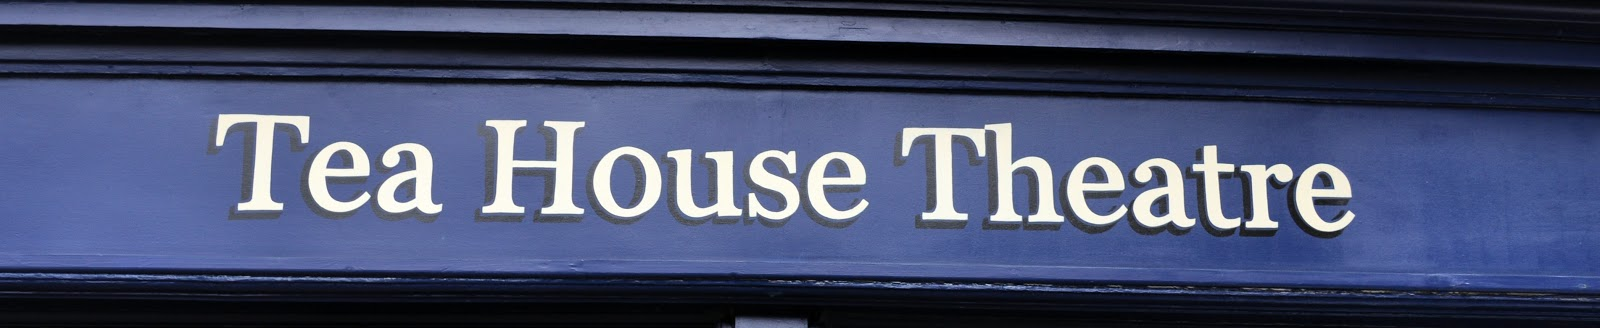 The Tea House Theatre, London